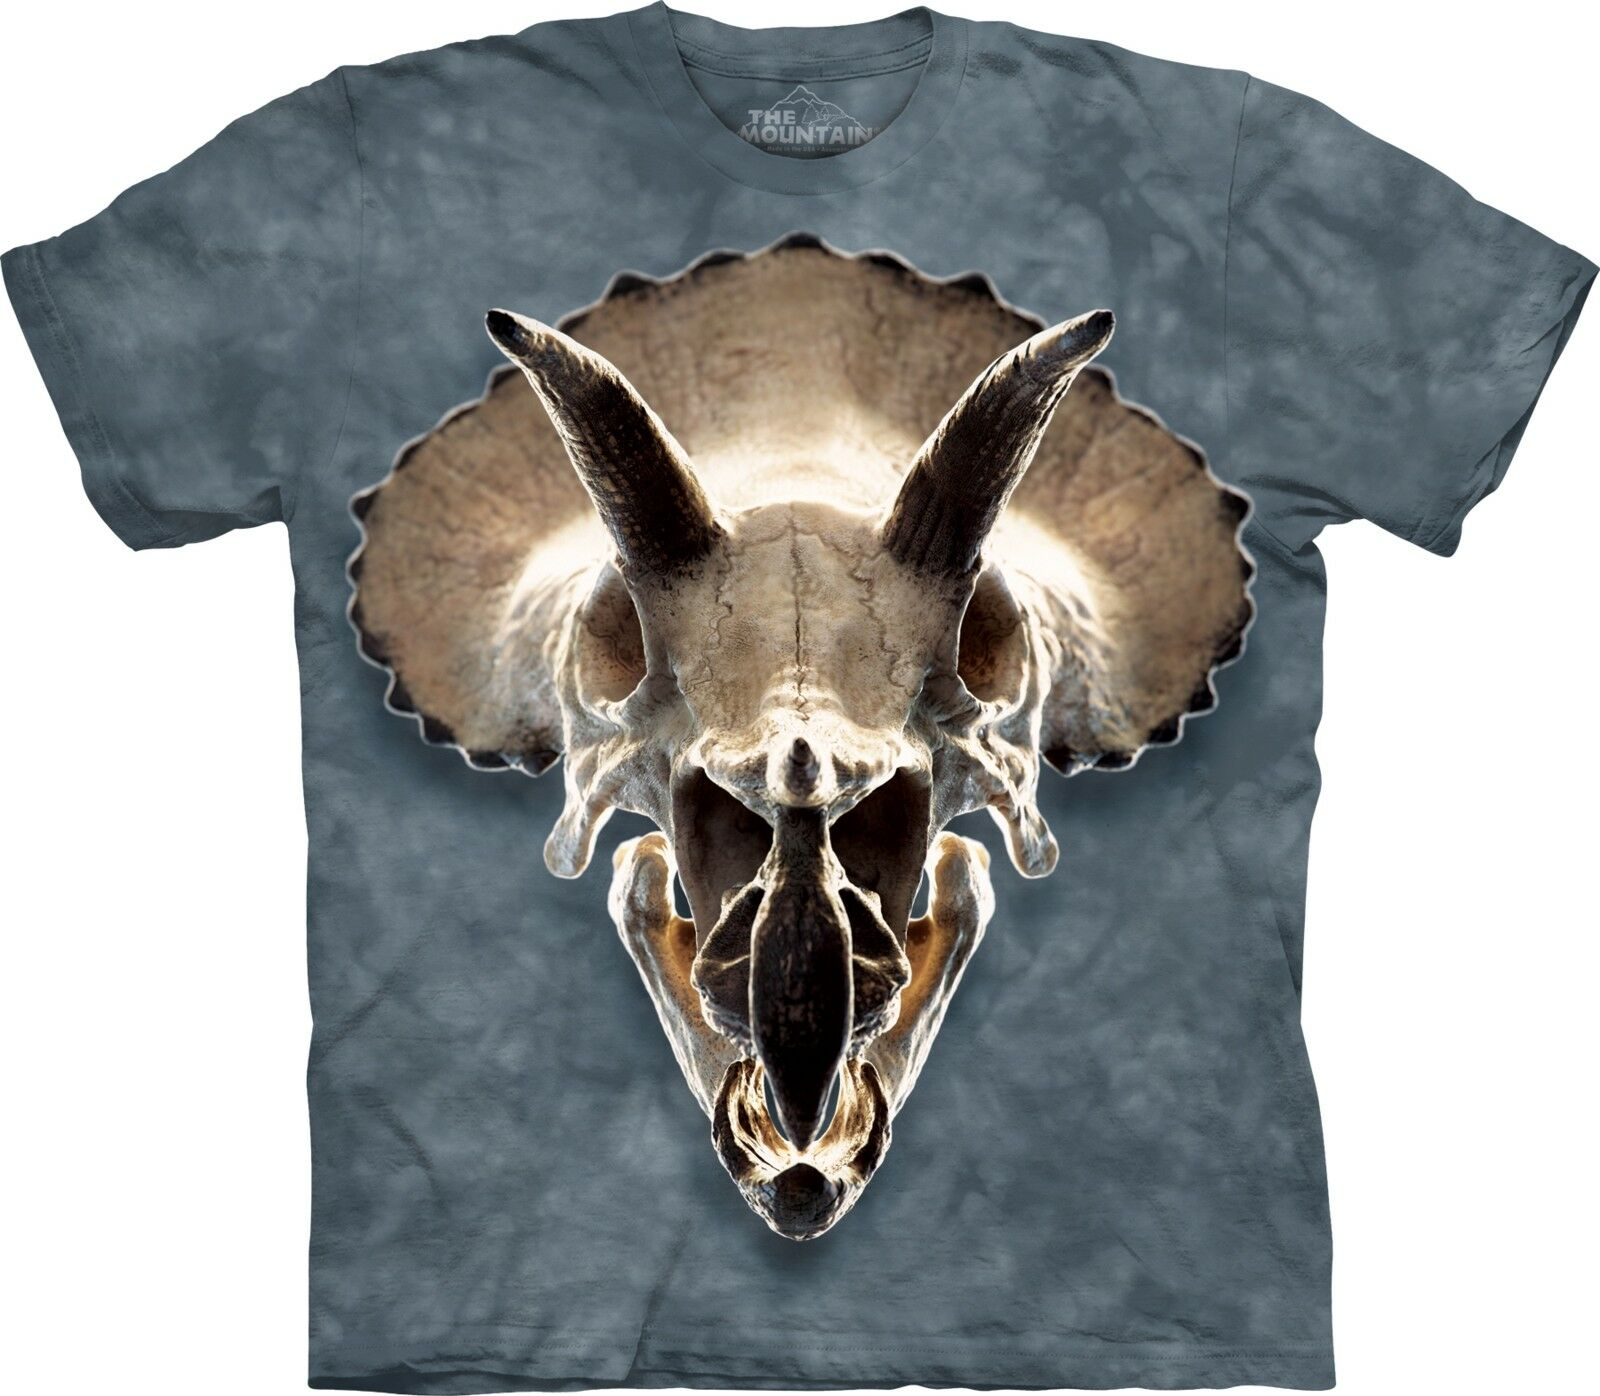 The Mountain Unisex Adult Triceratops Skull Dinosaur T Shirt